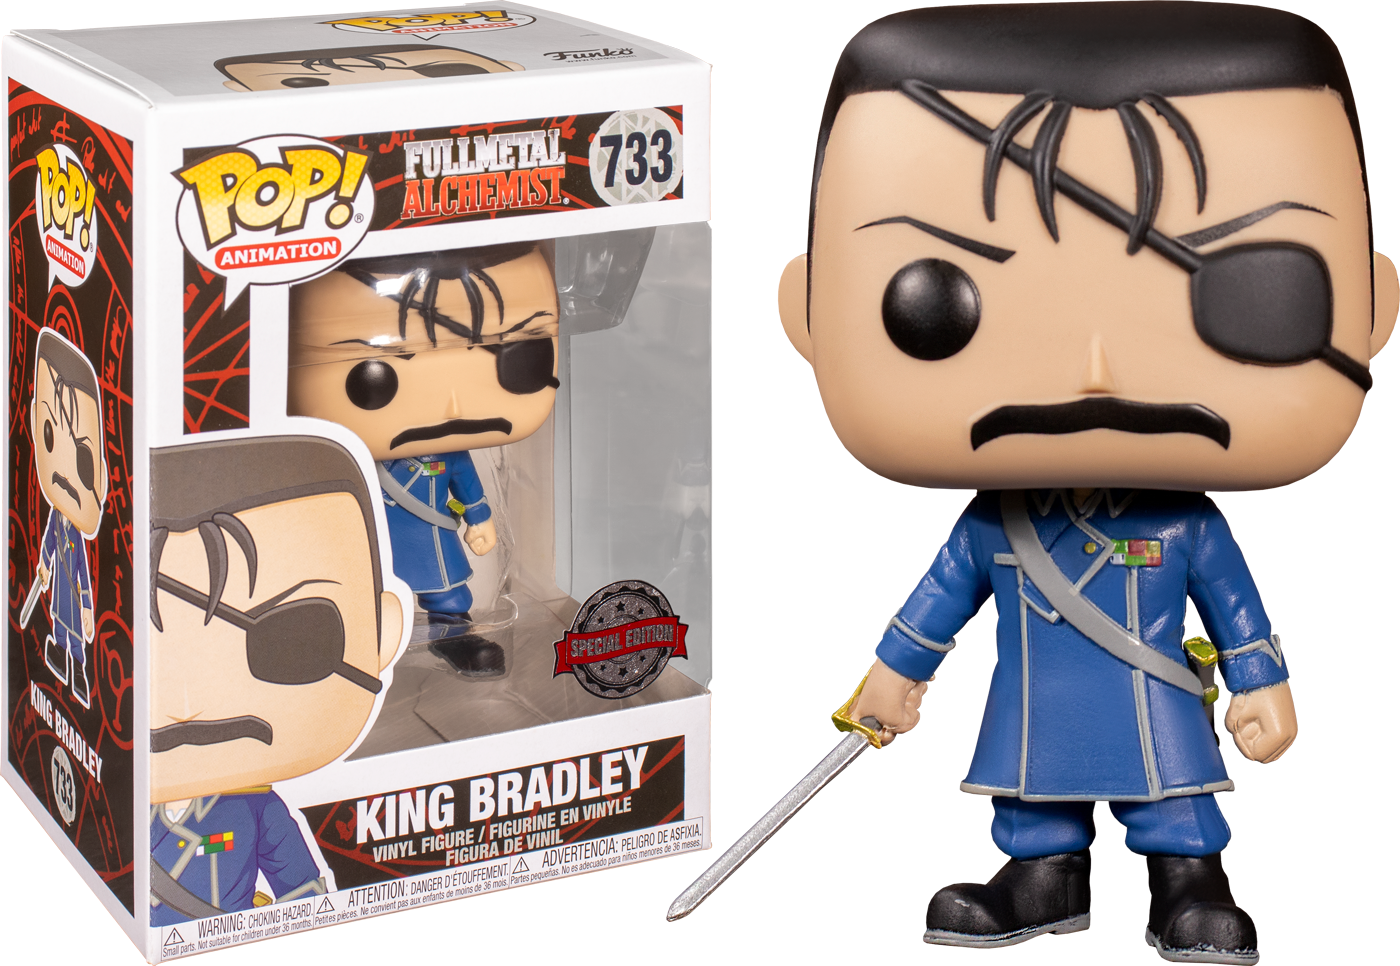 Funko Full Metal Alchemist - King Bradley Pop! Vinyl Figure